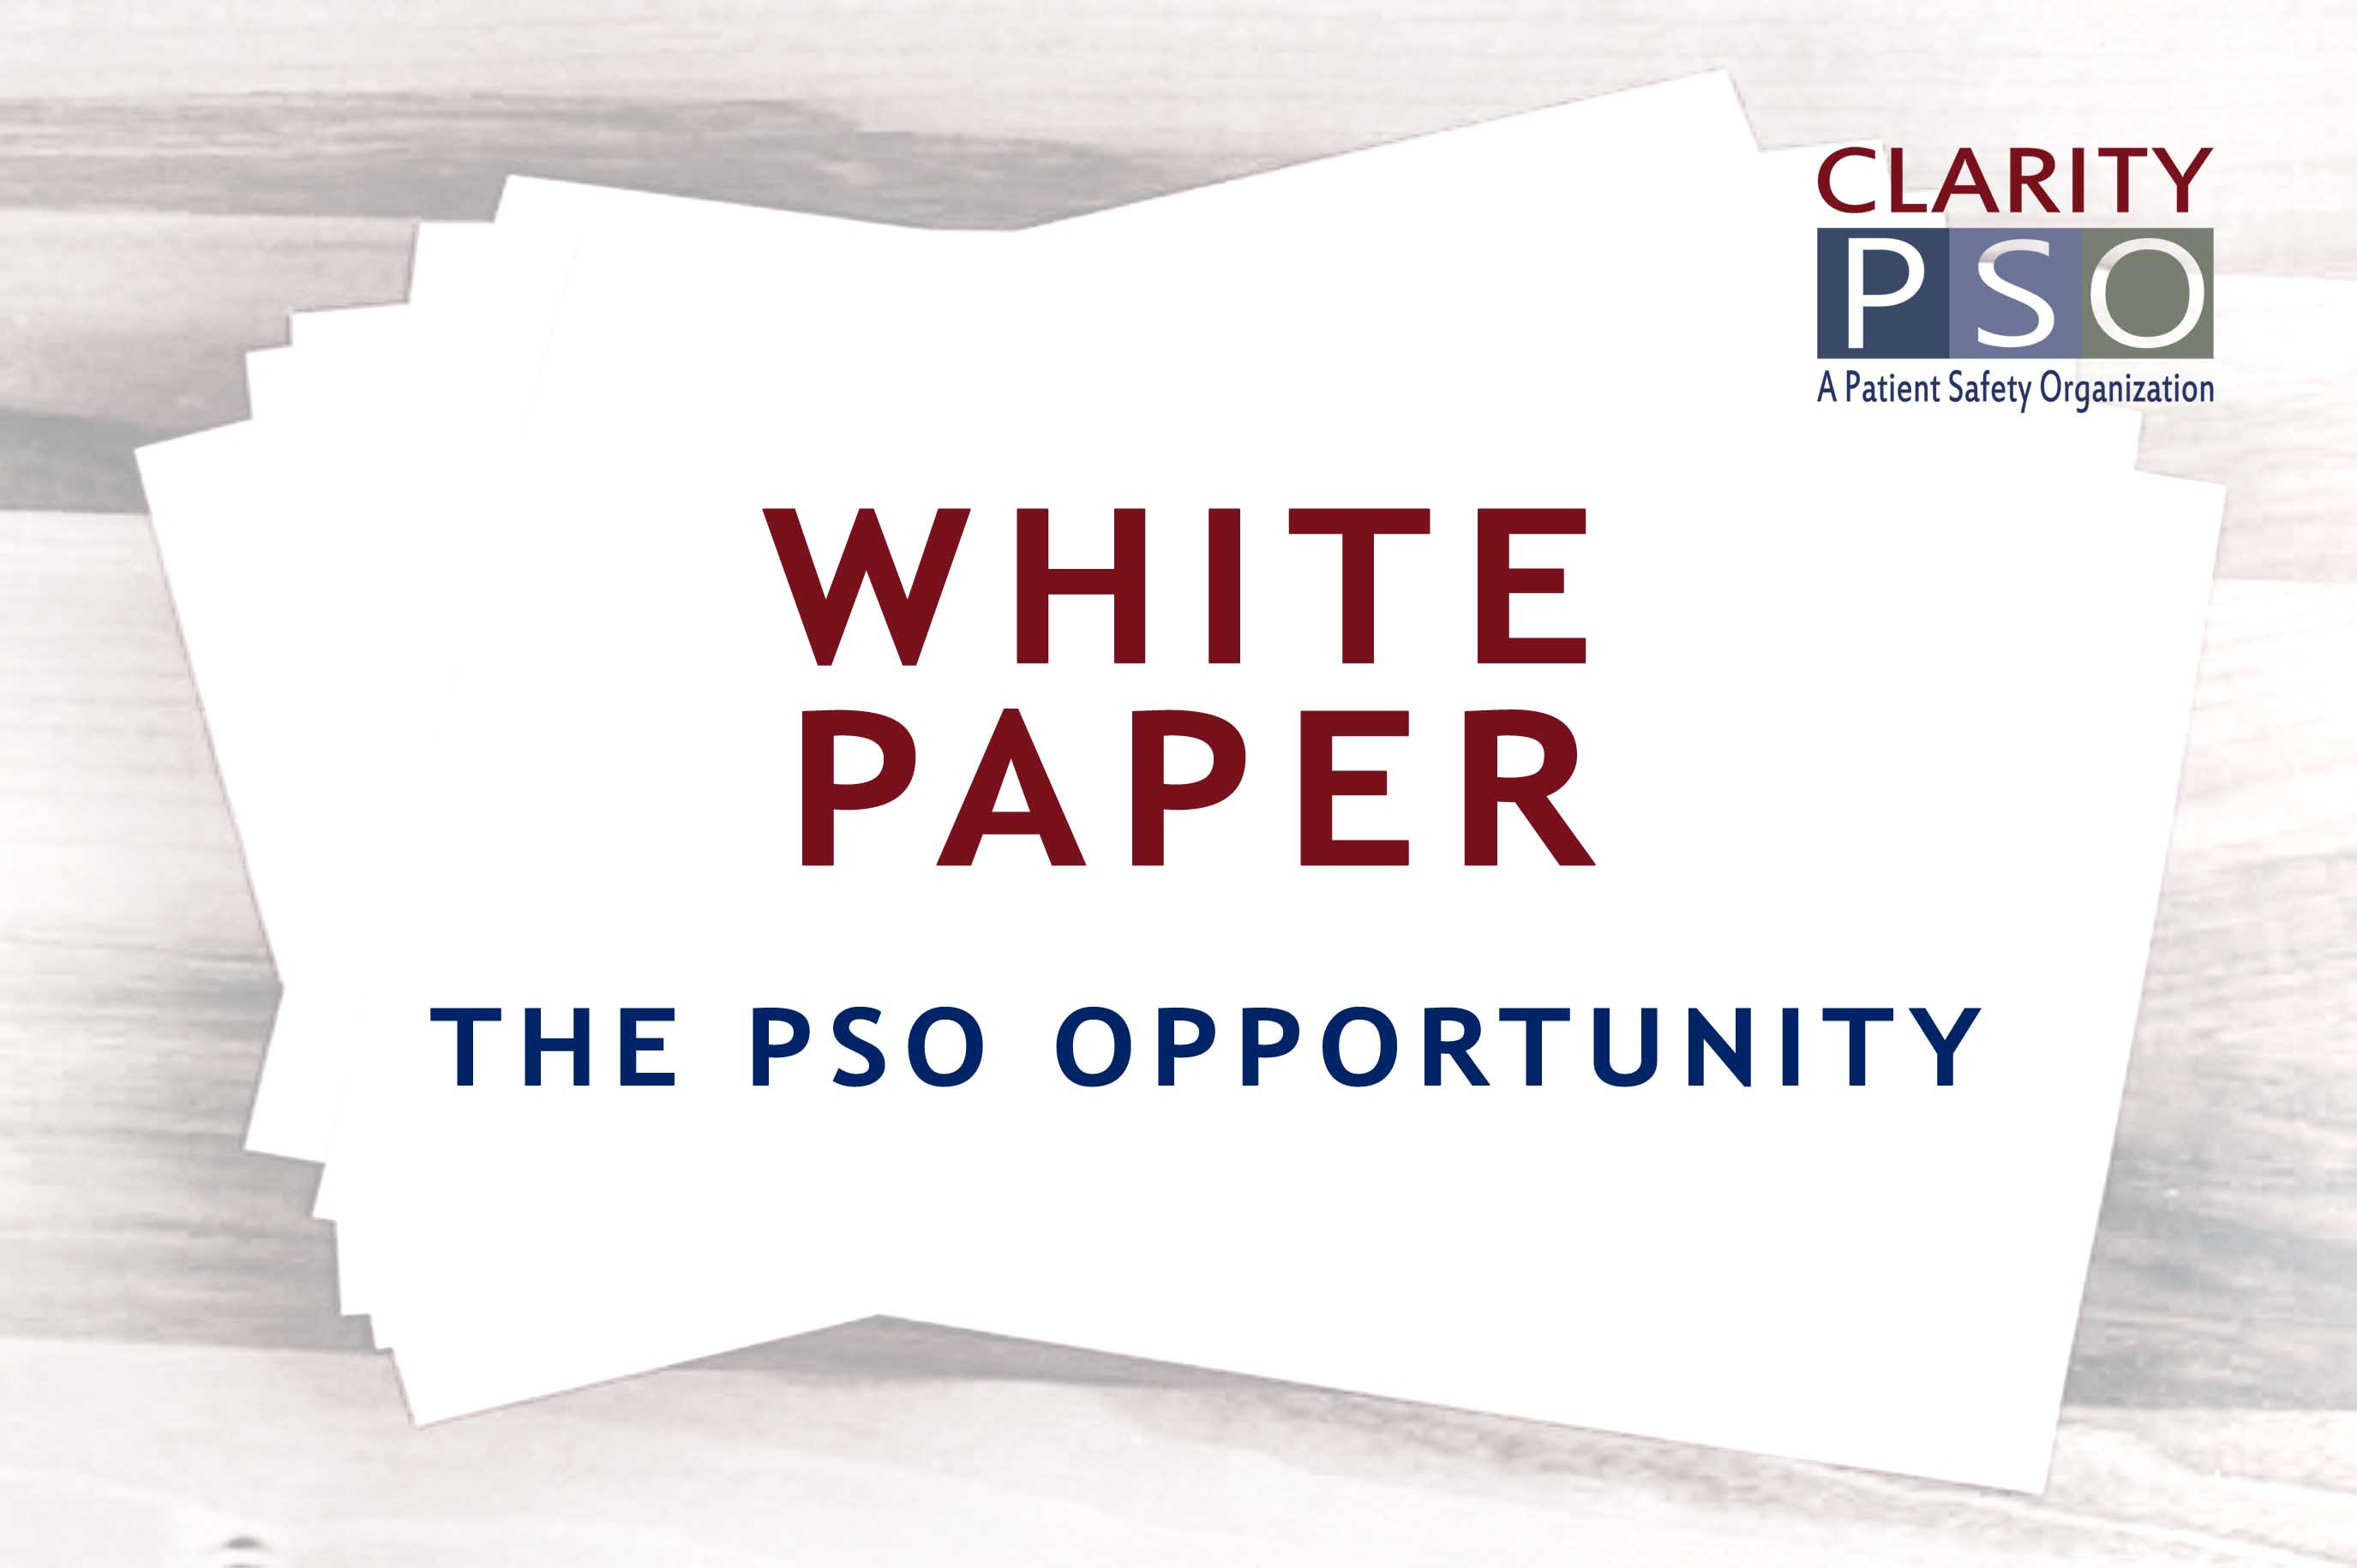 Clarity Patient Safety Organization White Paper